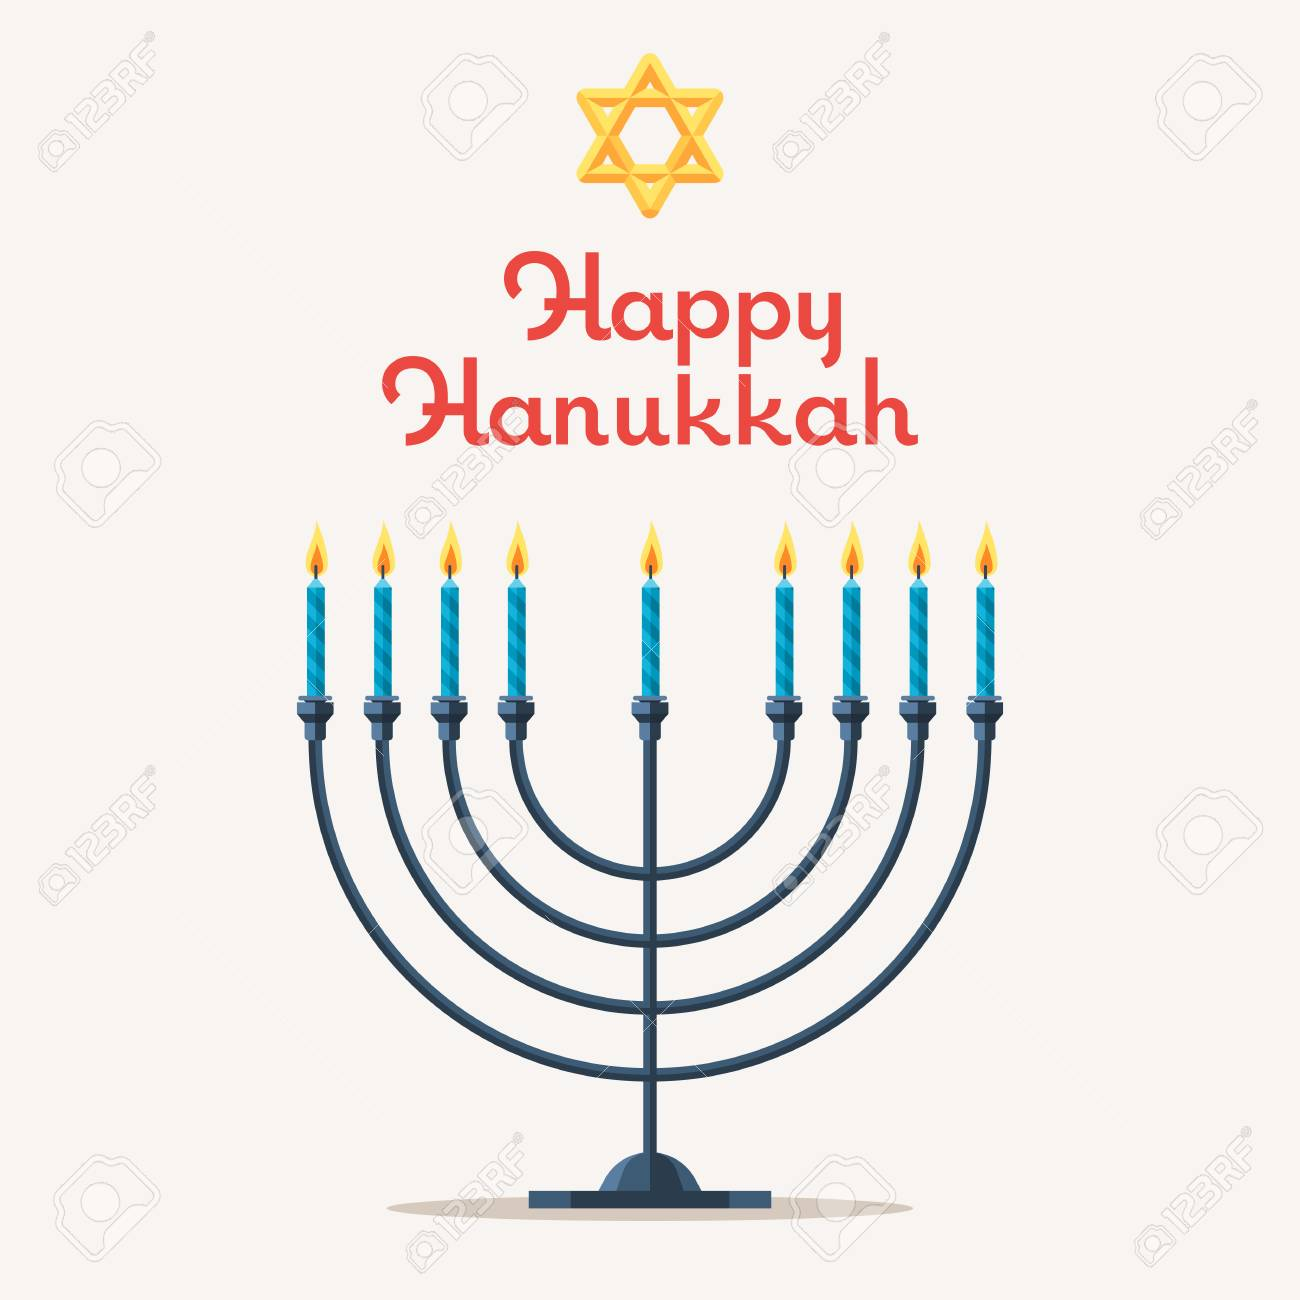 Happy Chanukah. Festival Of Lights, Feast Of Dedication. Jewish ...